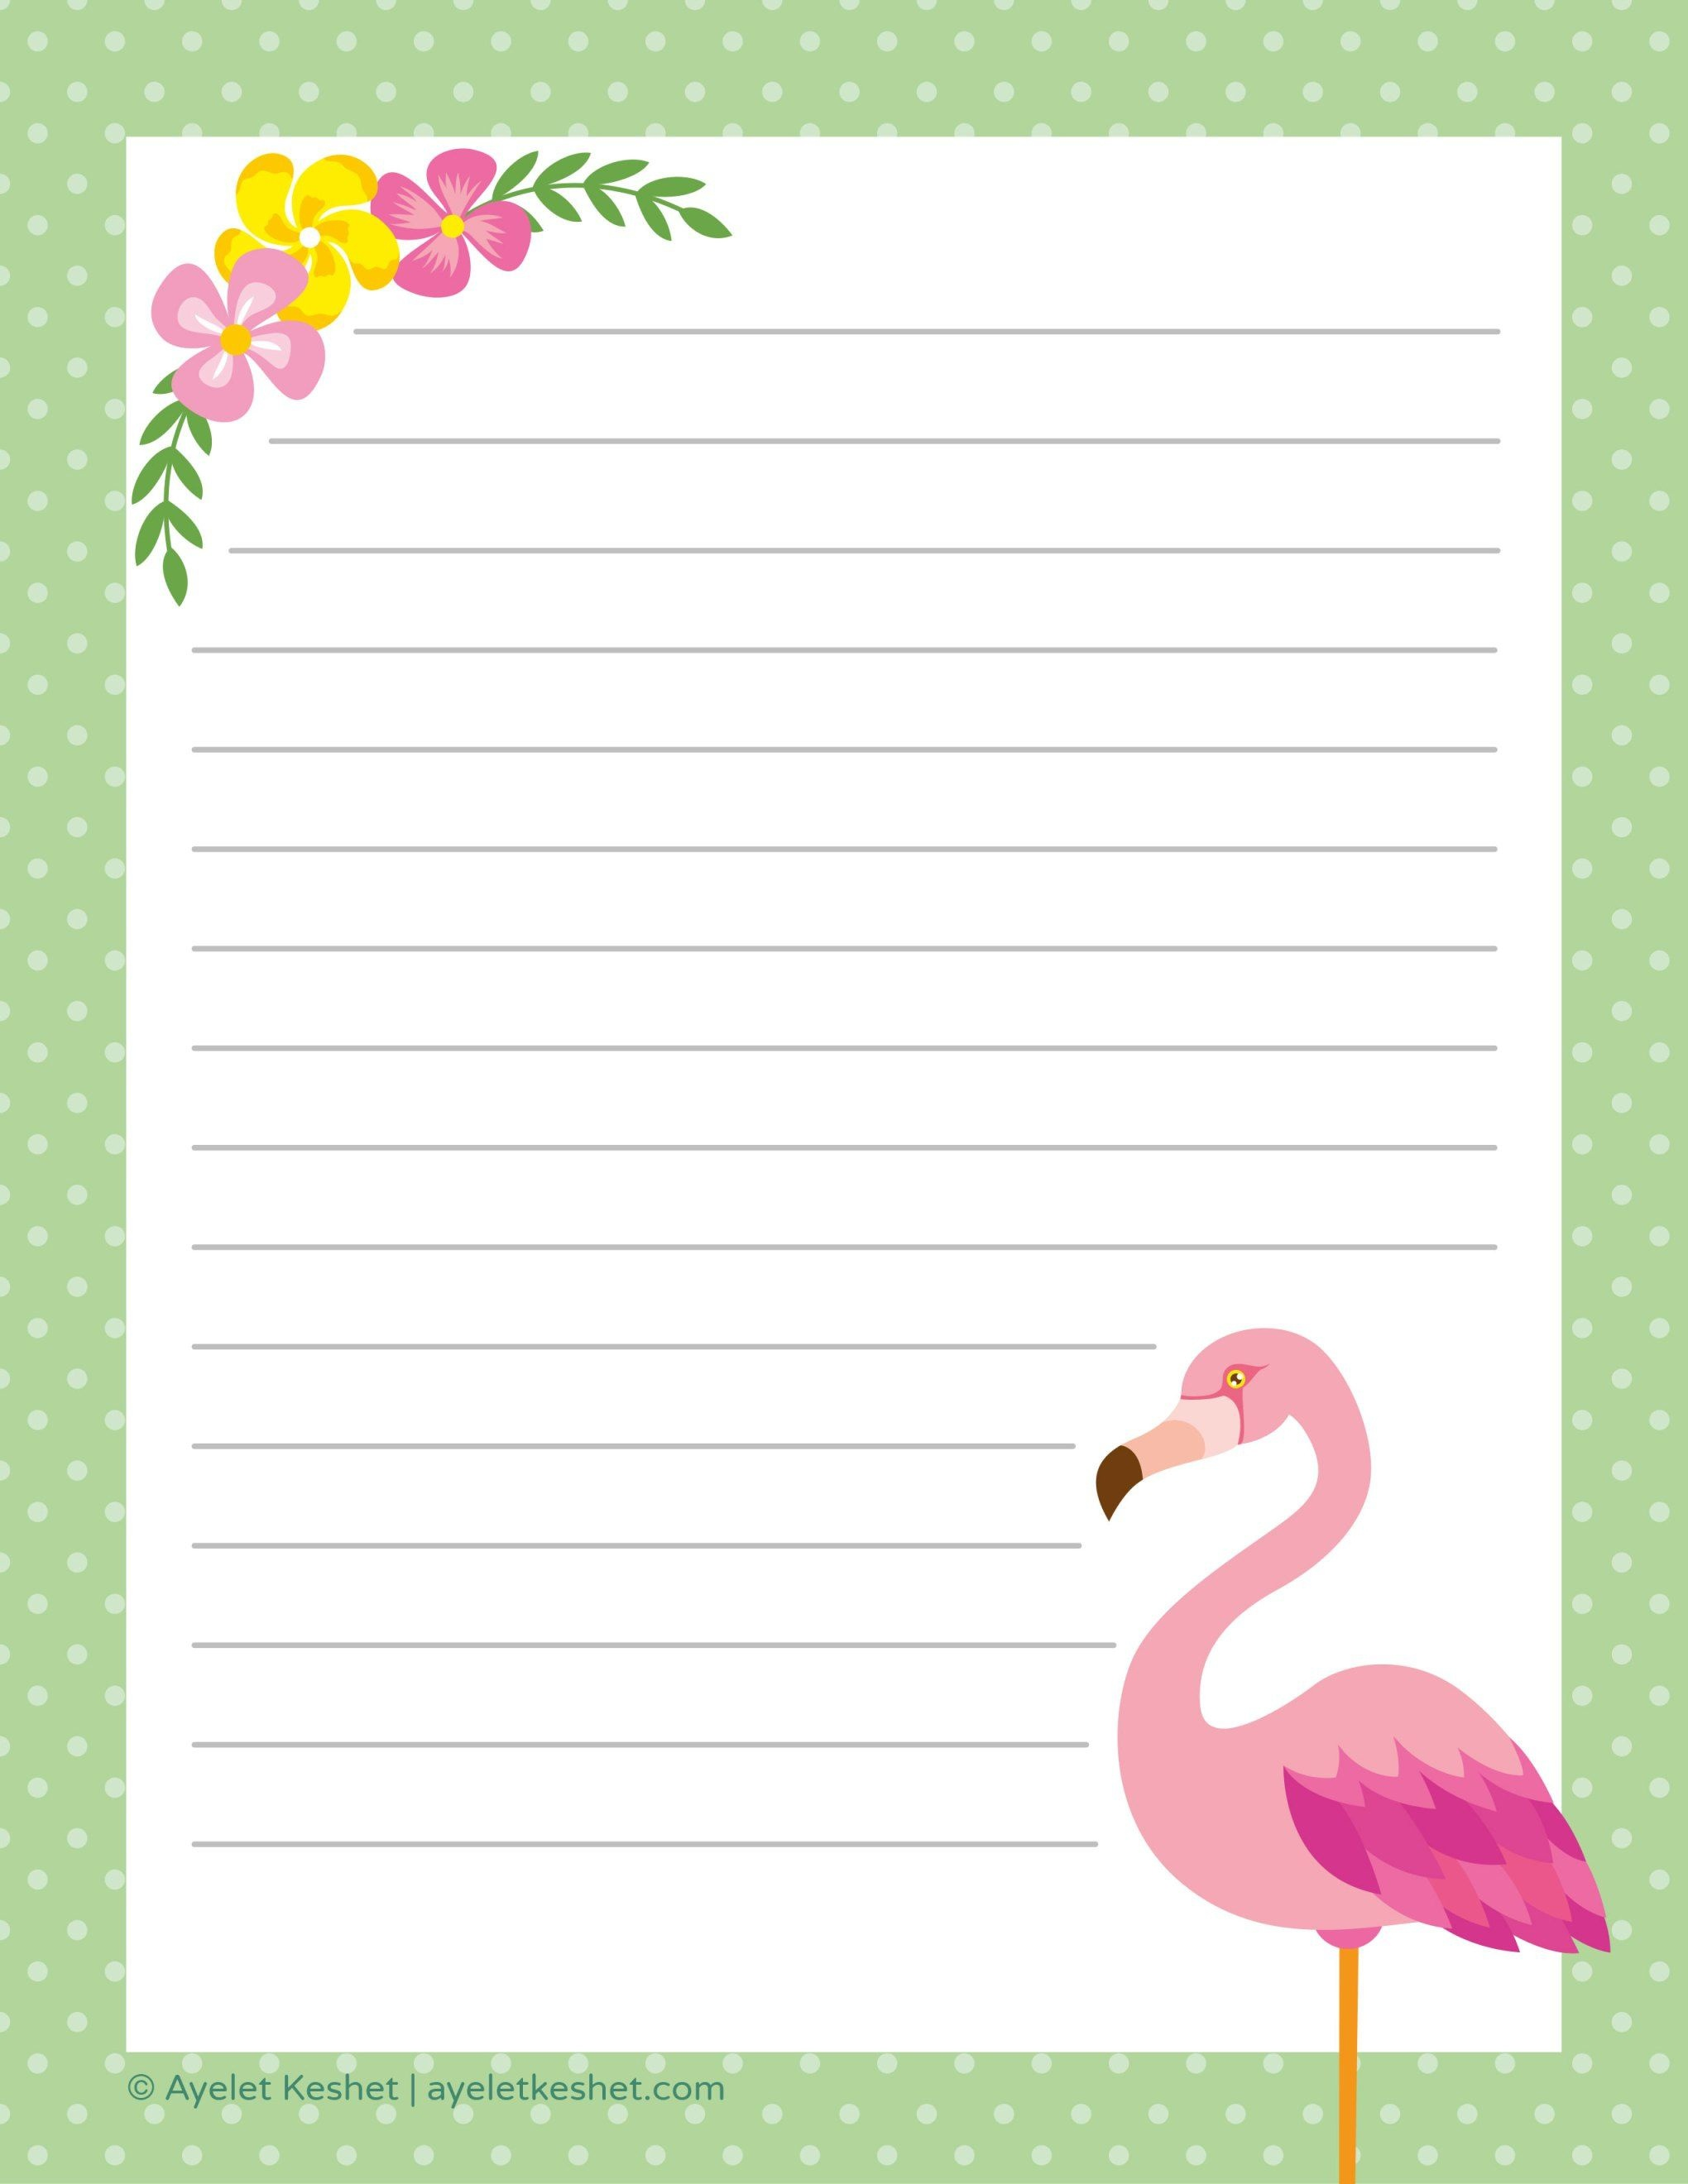 Free Printable Letter Paper | Printables To Go | Free Printable - Free Printable Golf Stationary